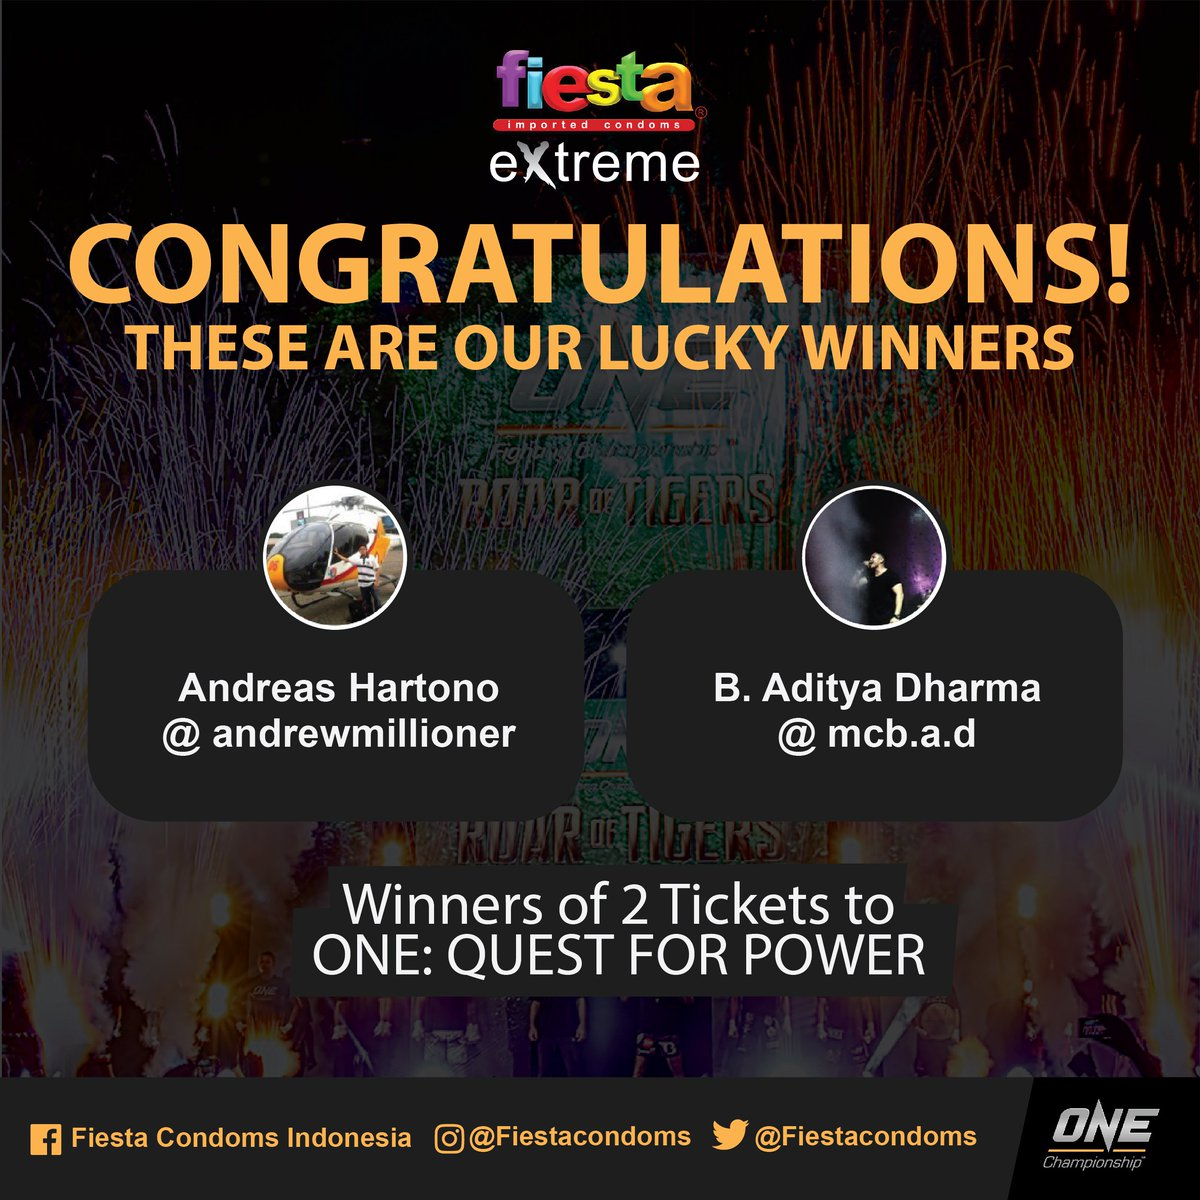 Fiesta Condoms On Twitter Congratulations Ini Dia Pemenang 2tiket Kondom Extreme One Quest For Power So Get Ready To Enjoy The Match Guys See You Tomorrow